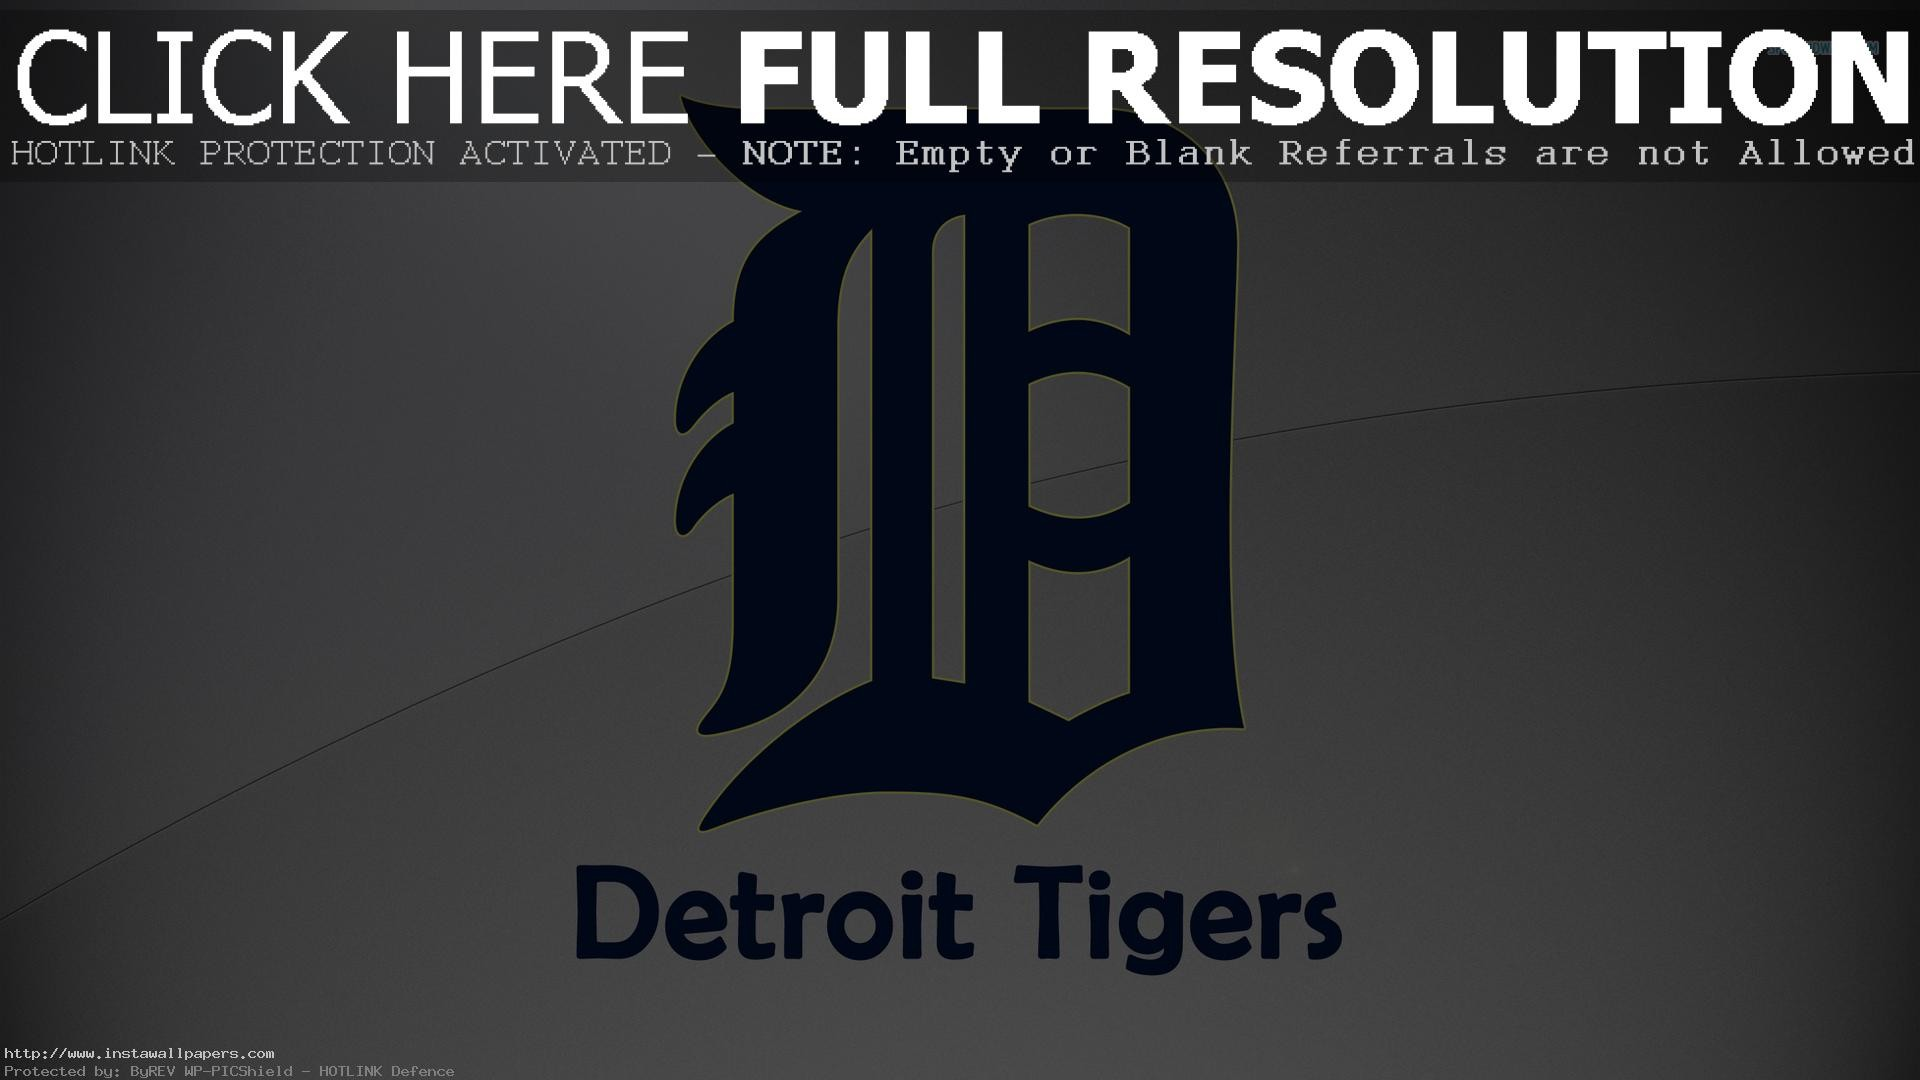 … detroit tigers HD iphone background screensaver free download